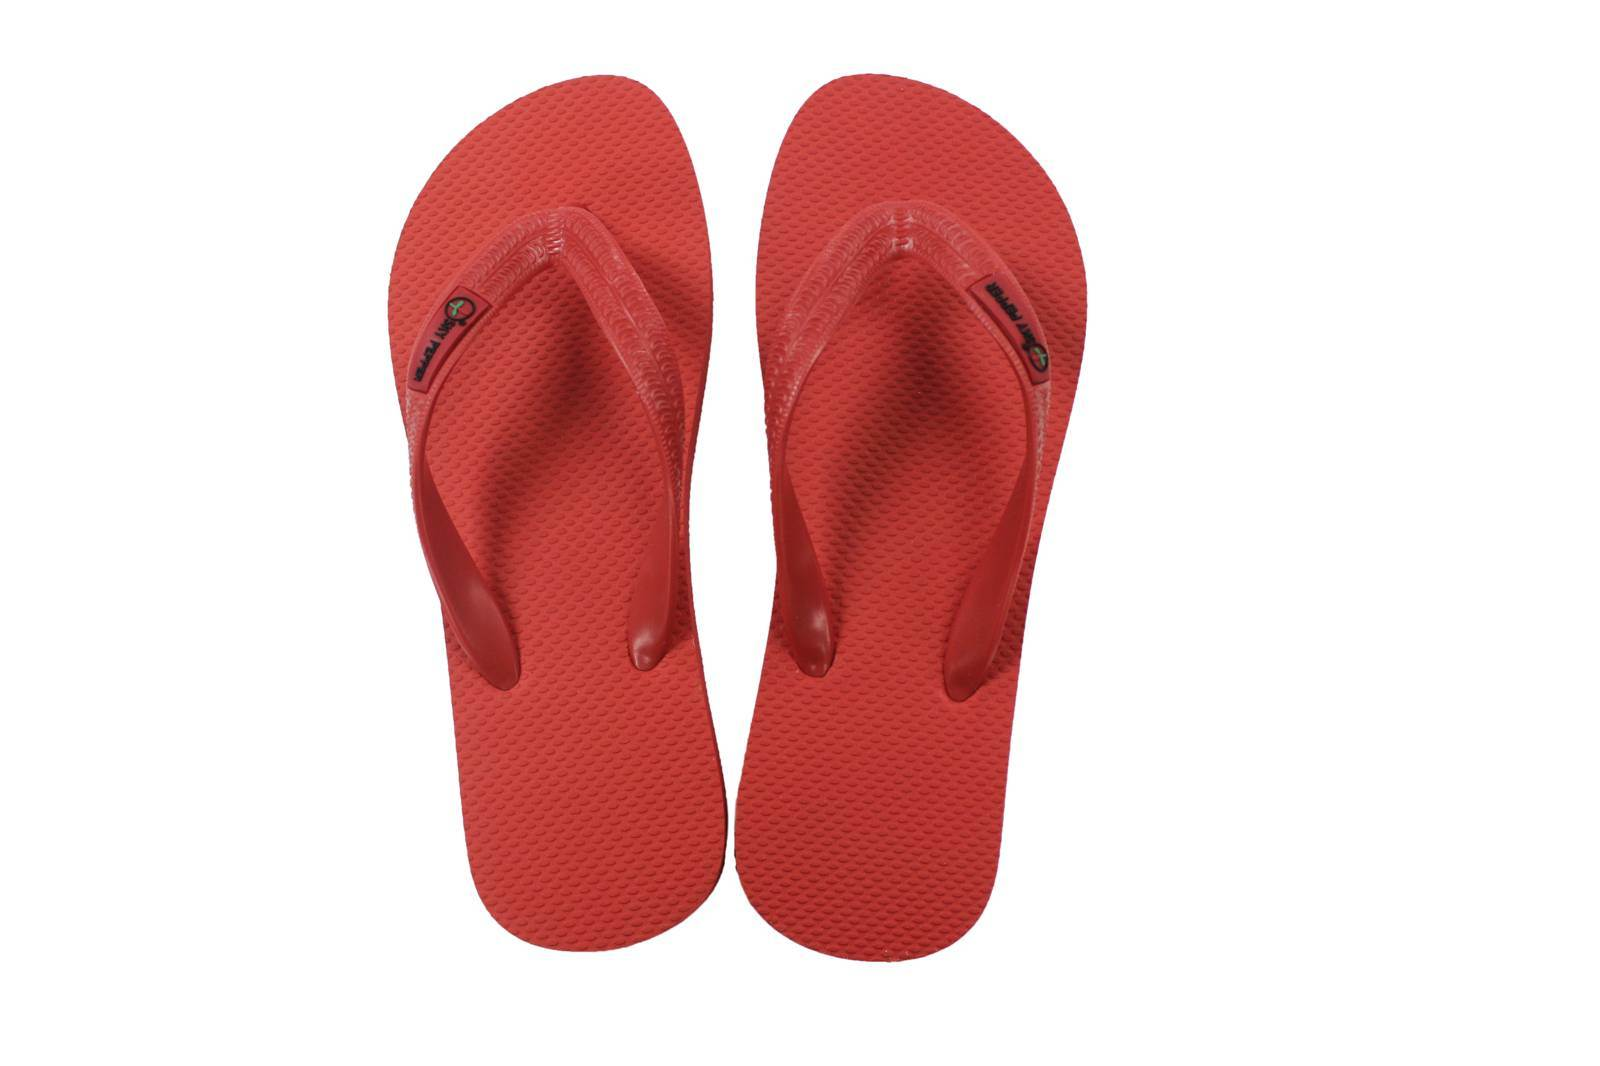 Flip Flop Rubber Sole with PVC Strap